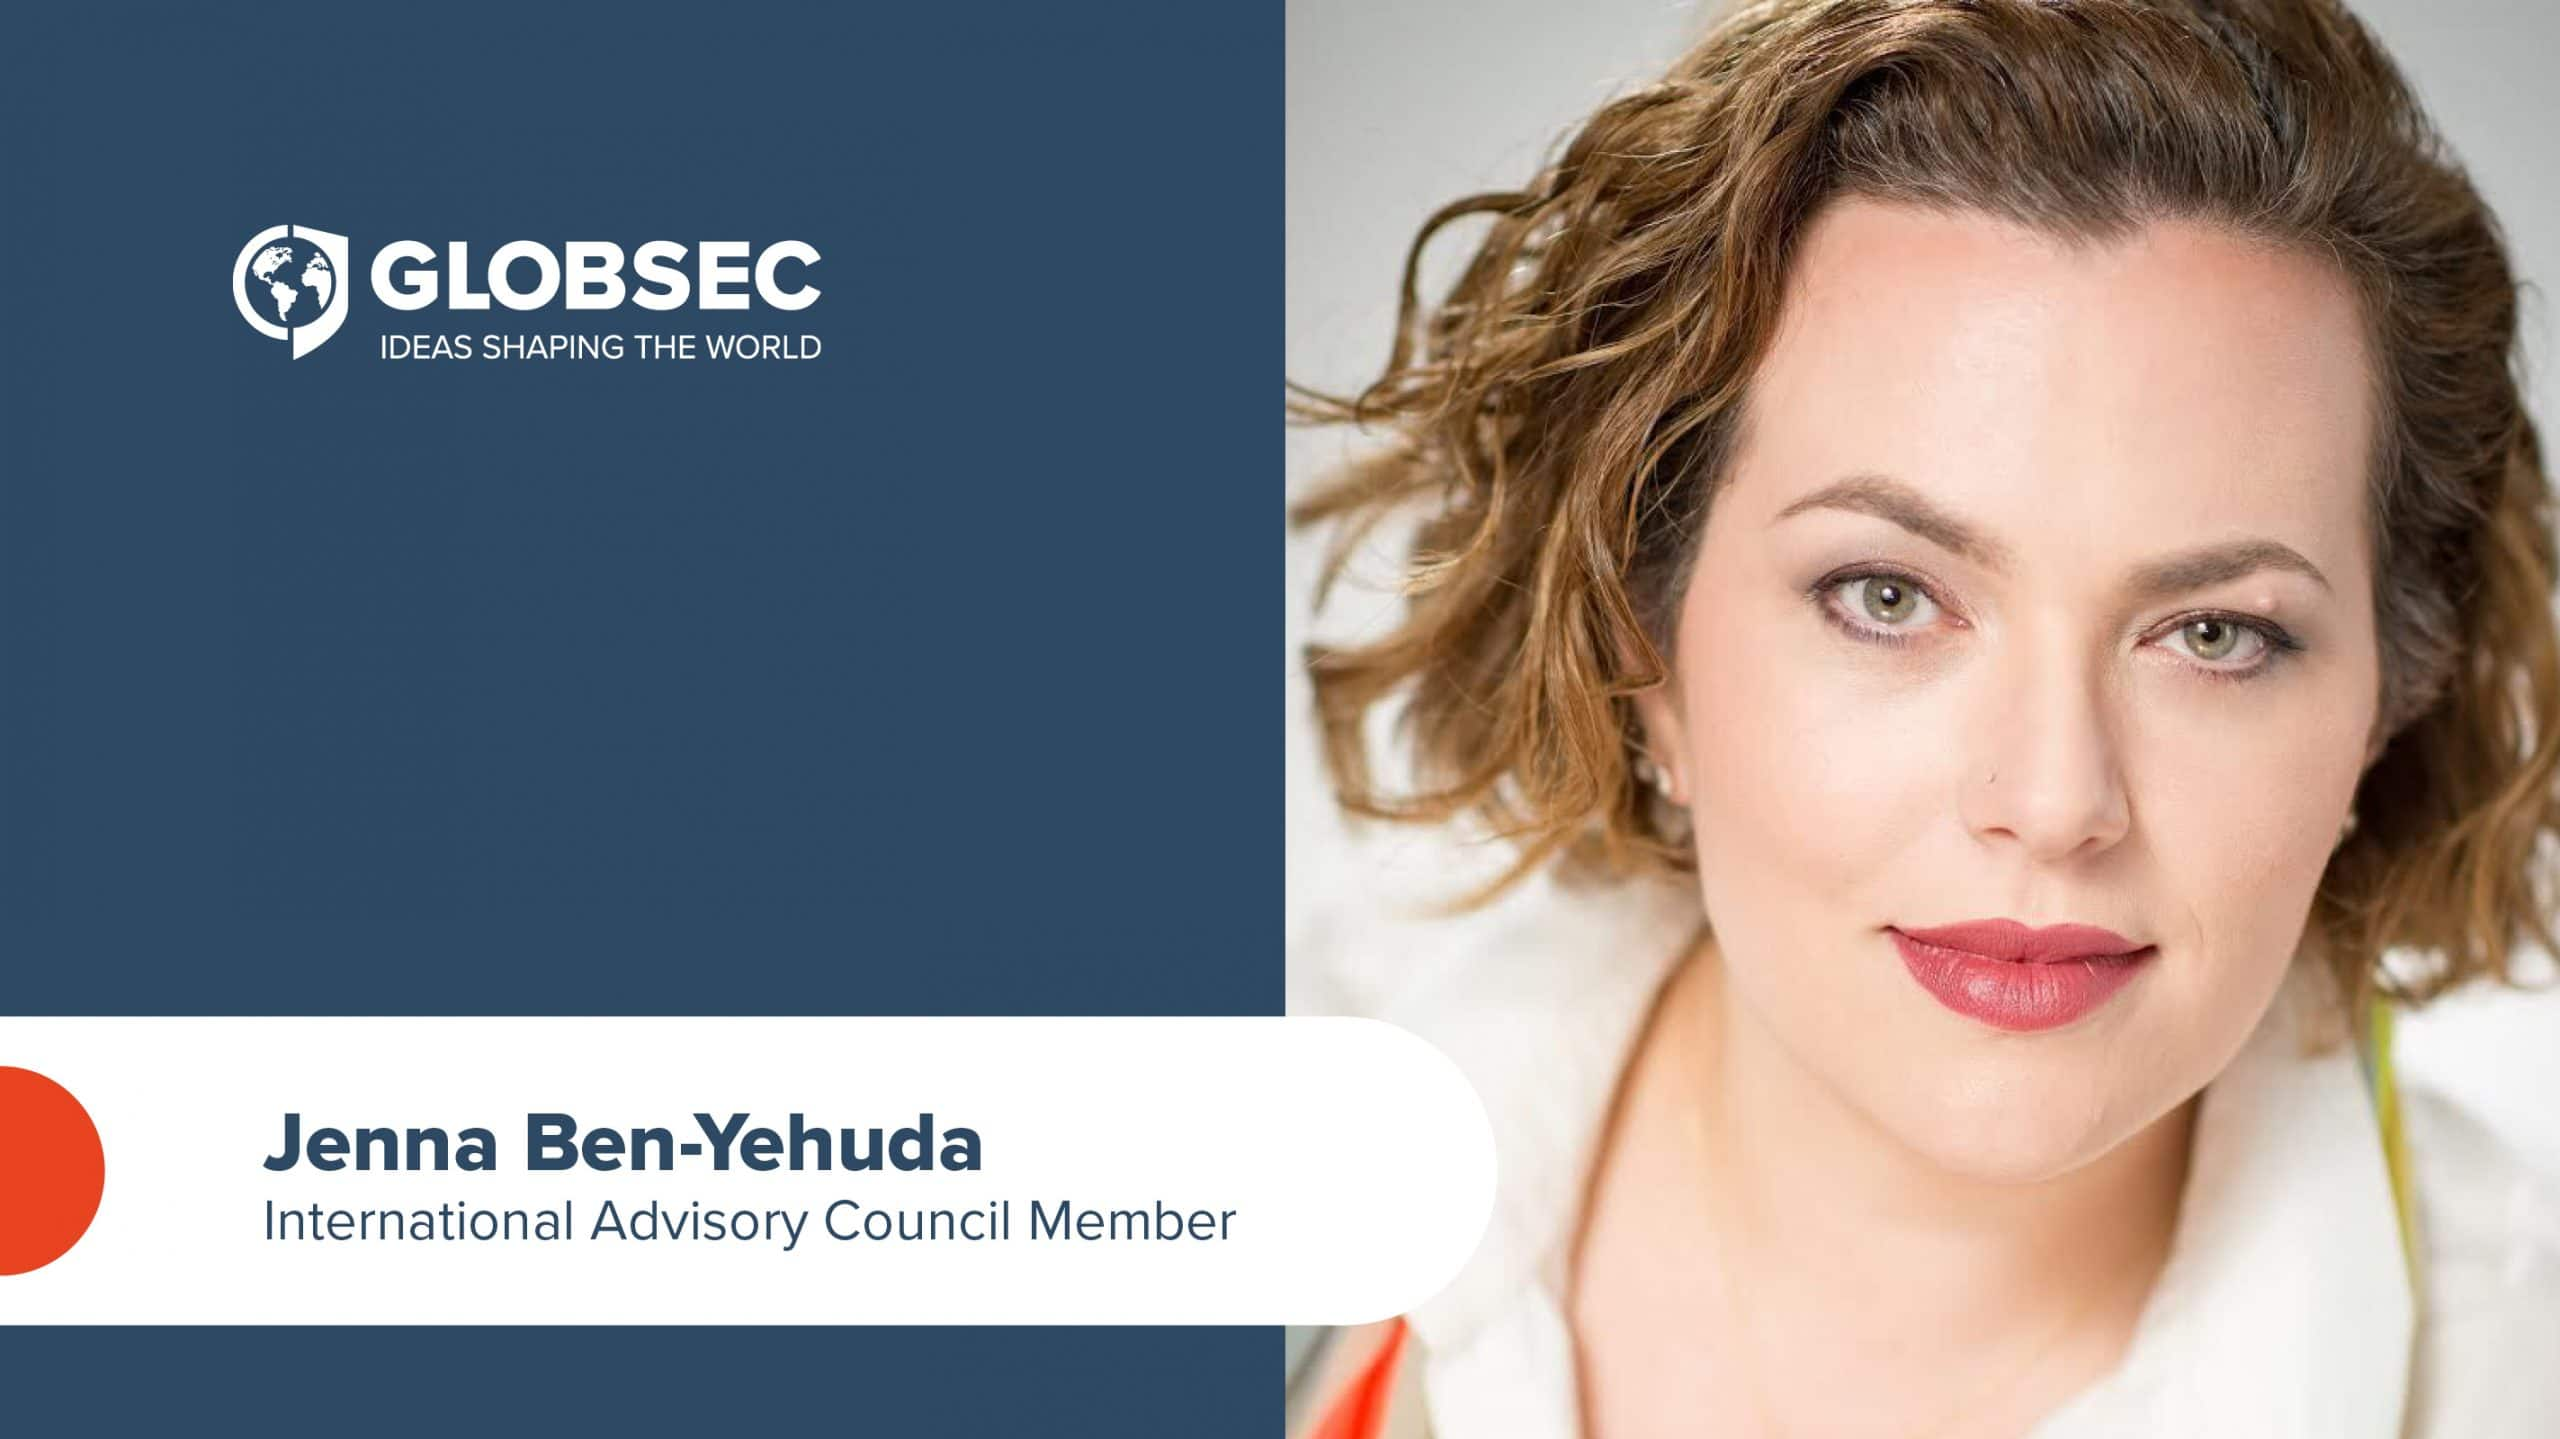 Jenna Ben-Yehuda joins GLOBSEC's International Advisory Council